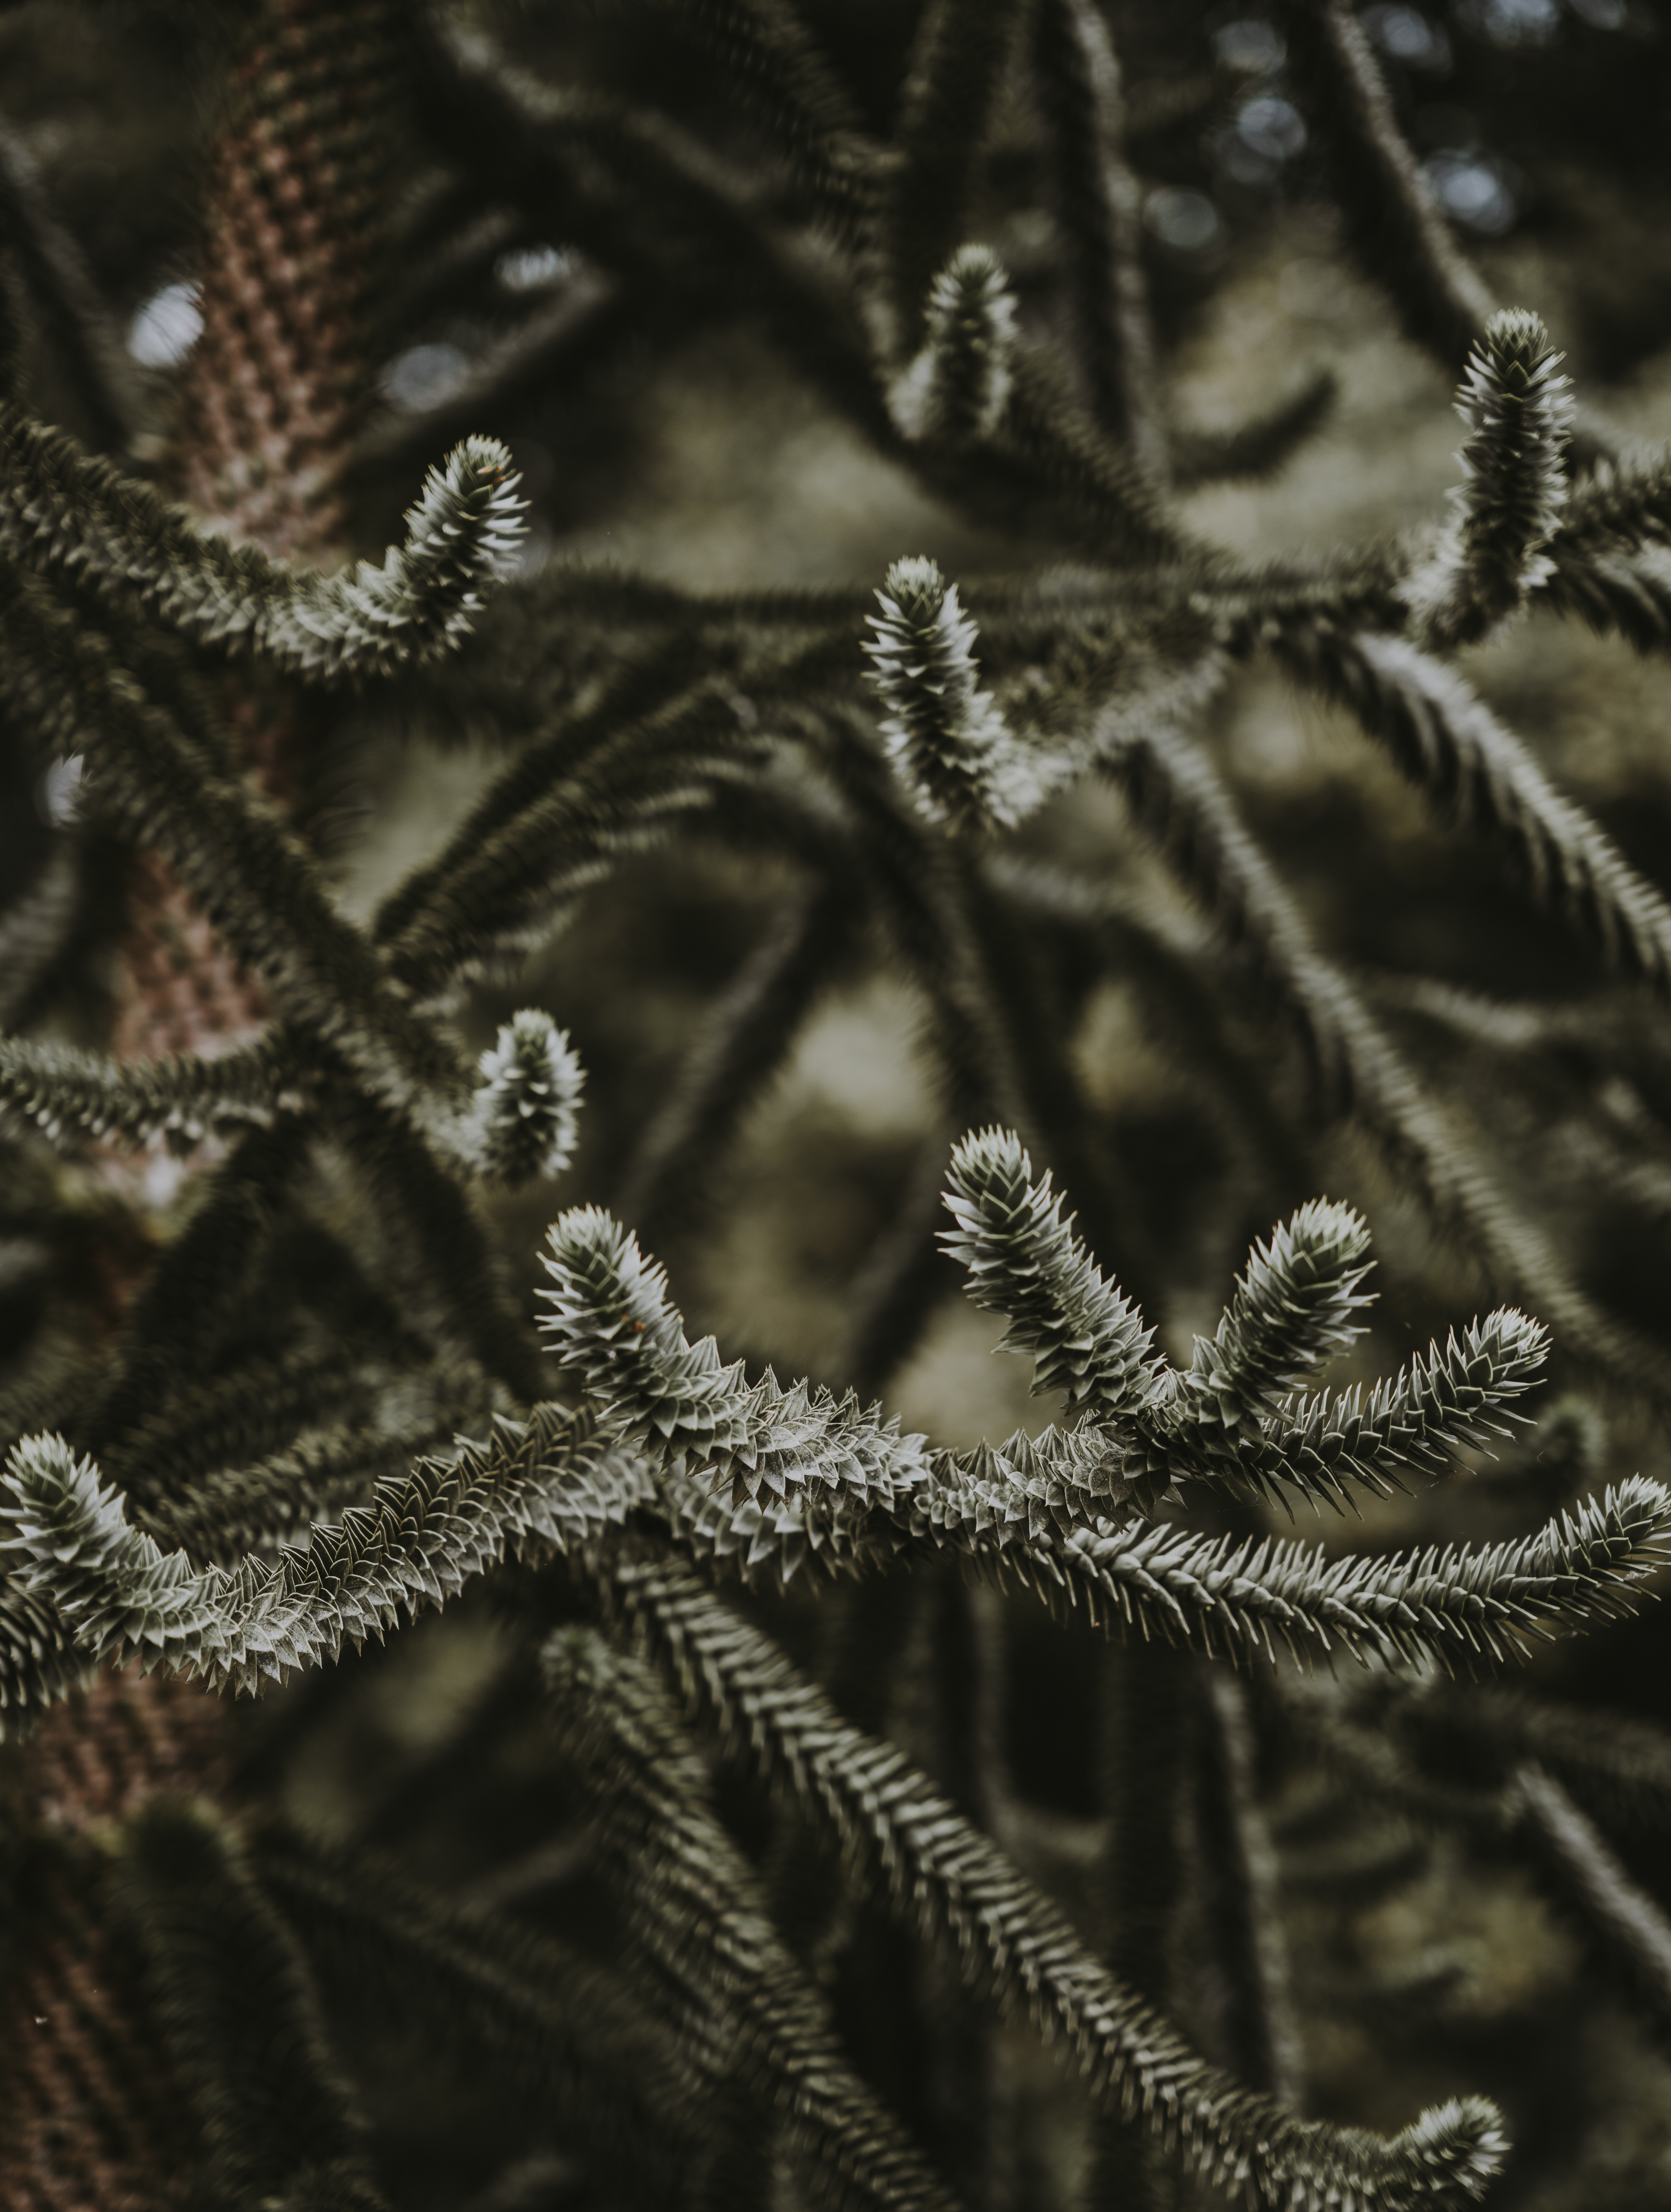 closeup photography of pine trees at